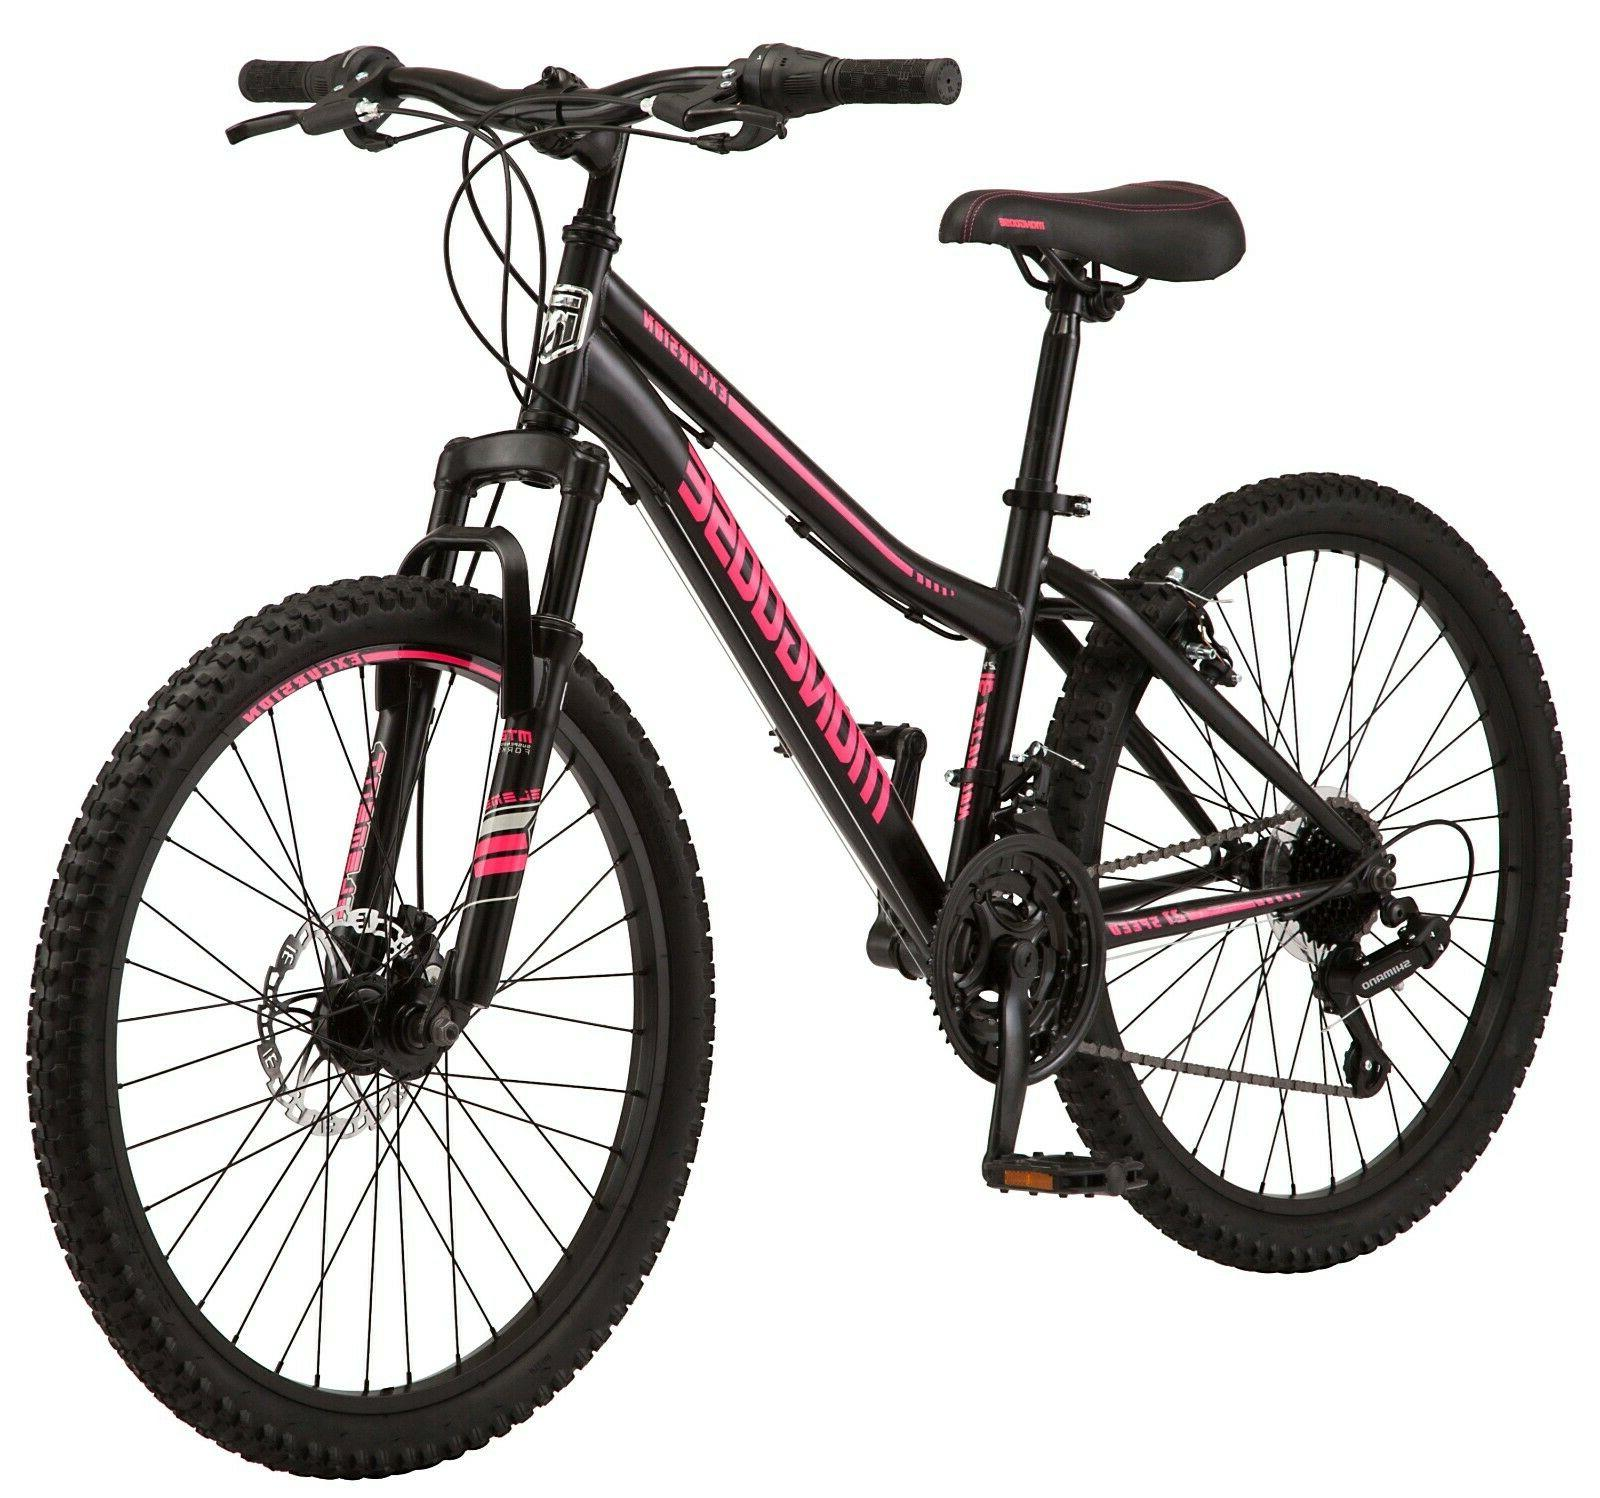 Mongoose Excursion Mountain Bike, 24-inch wheel, 21 speeds,